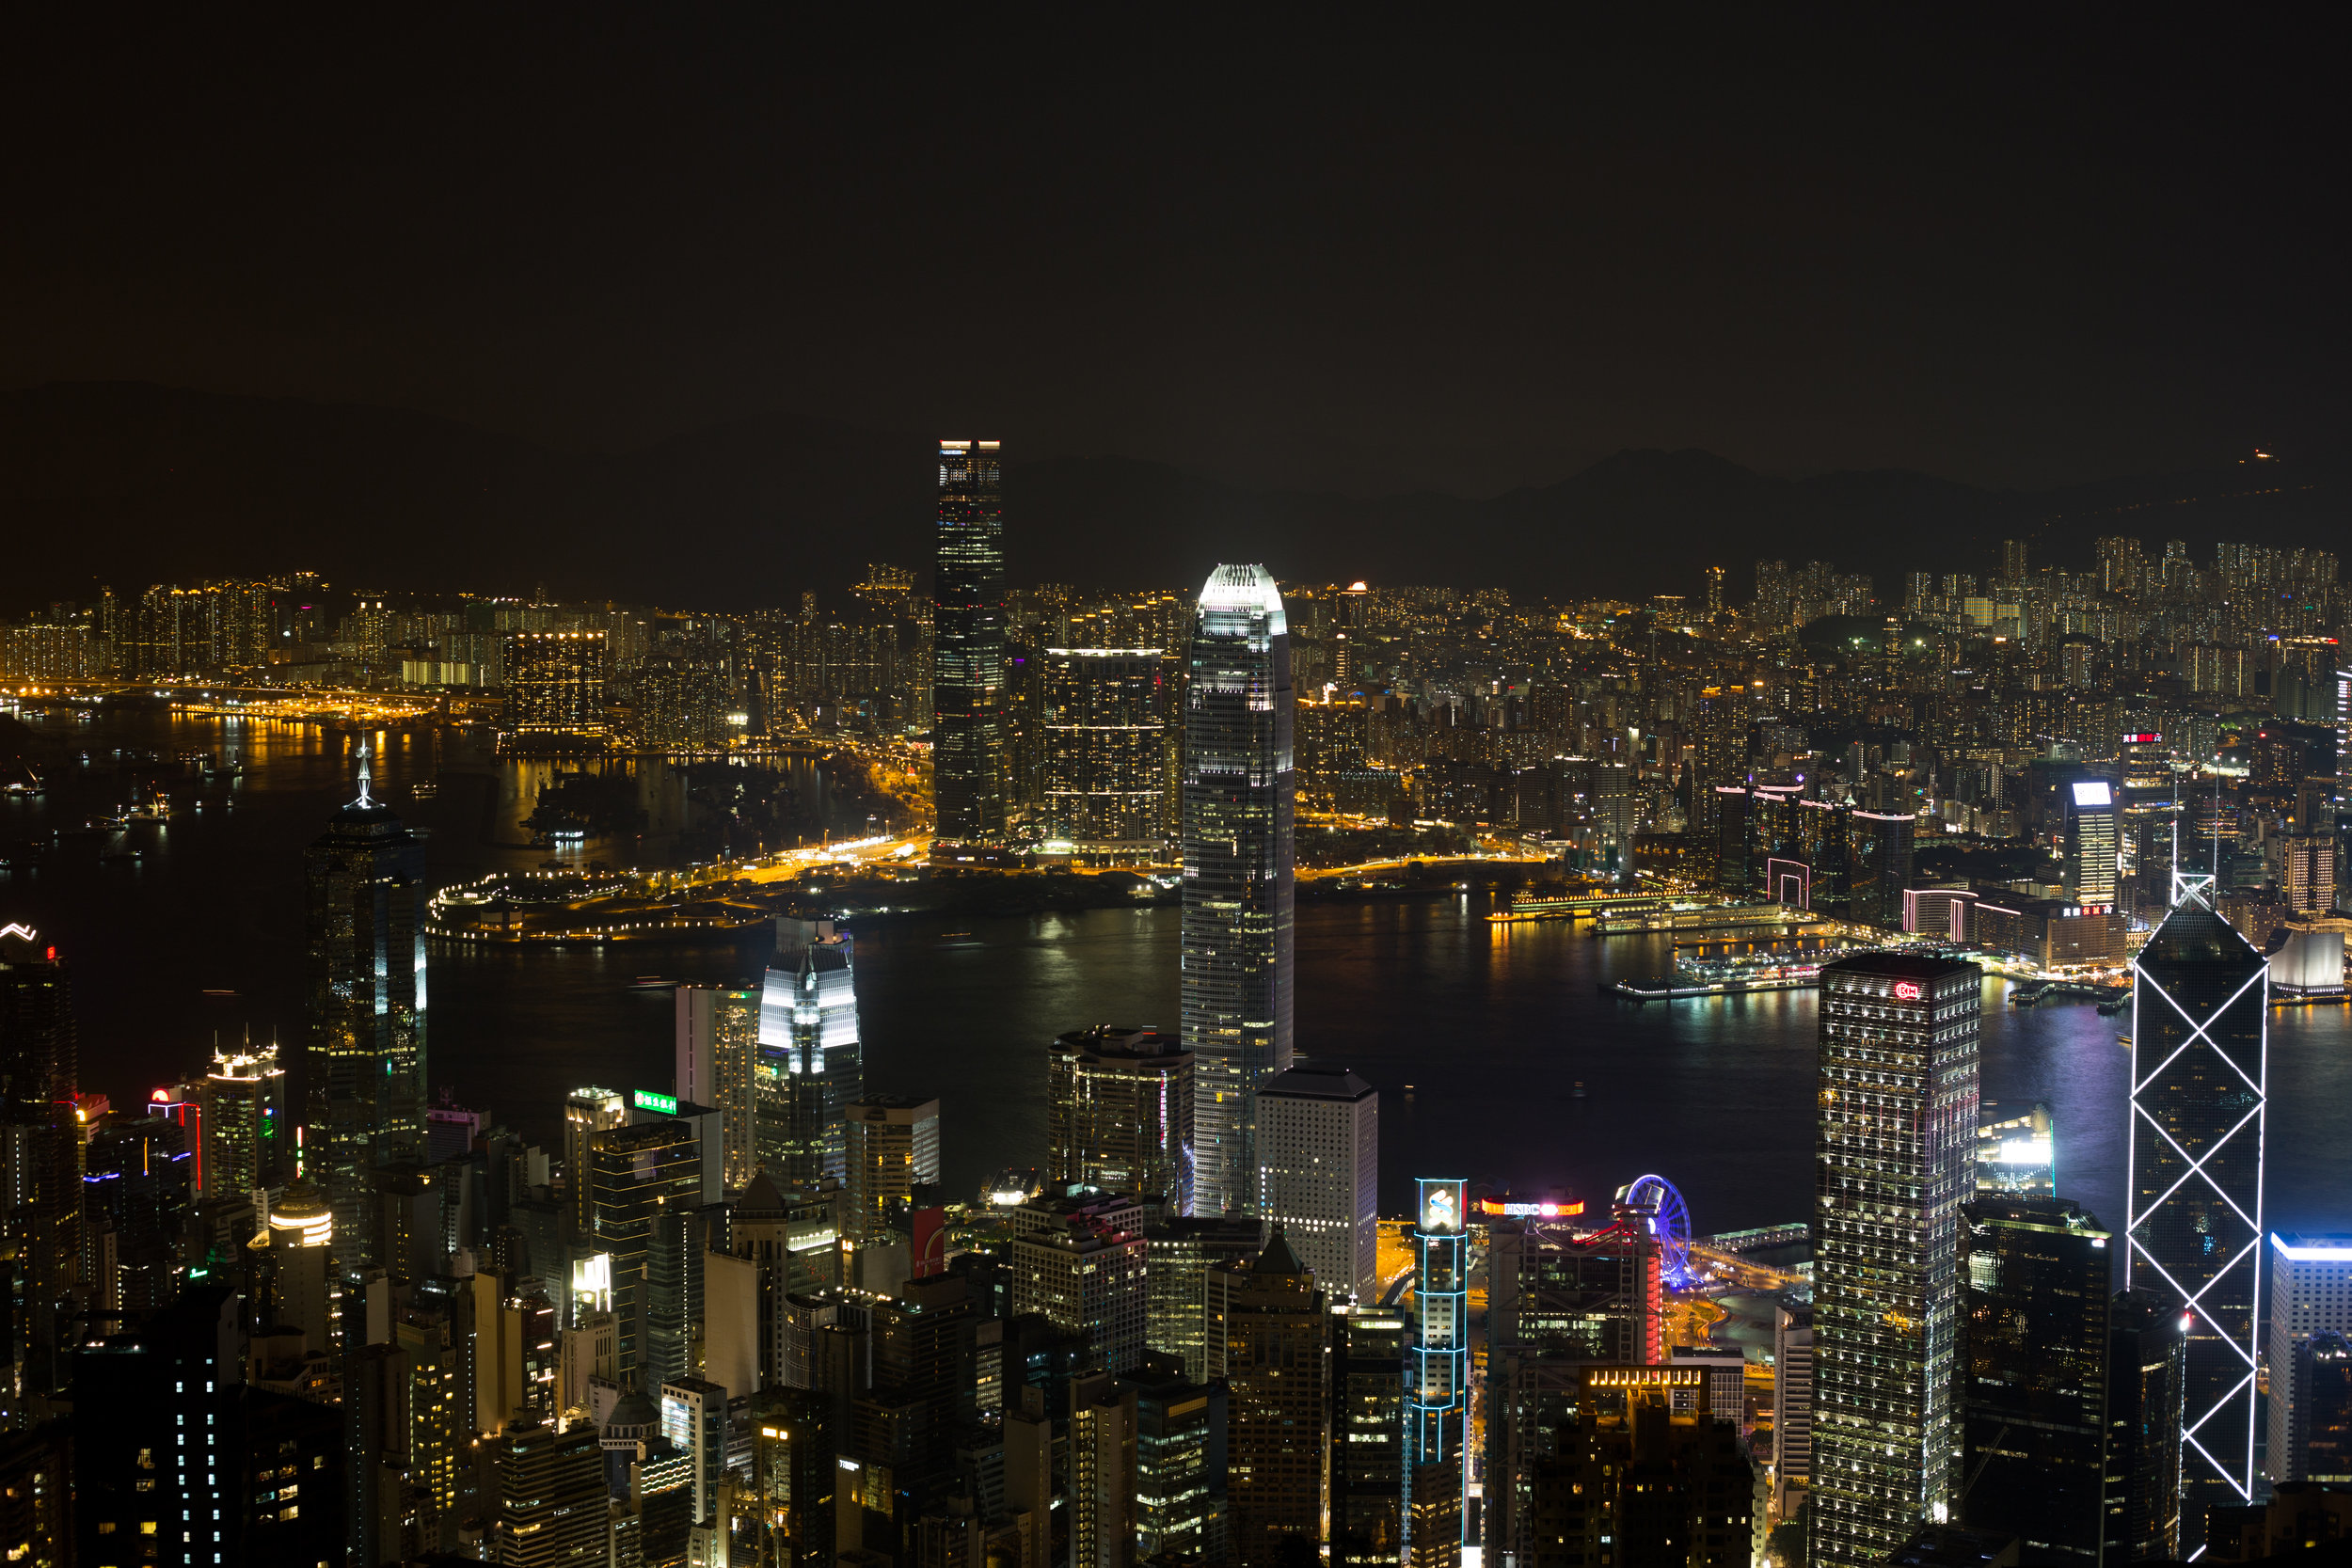 Nightime view of Hong Kong from The Peak